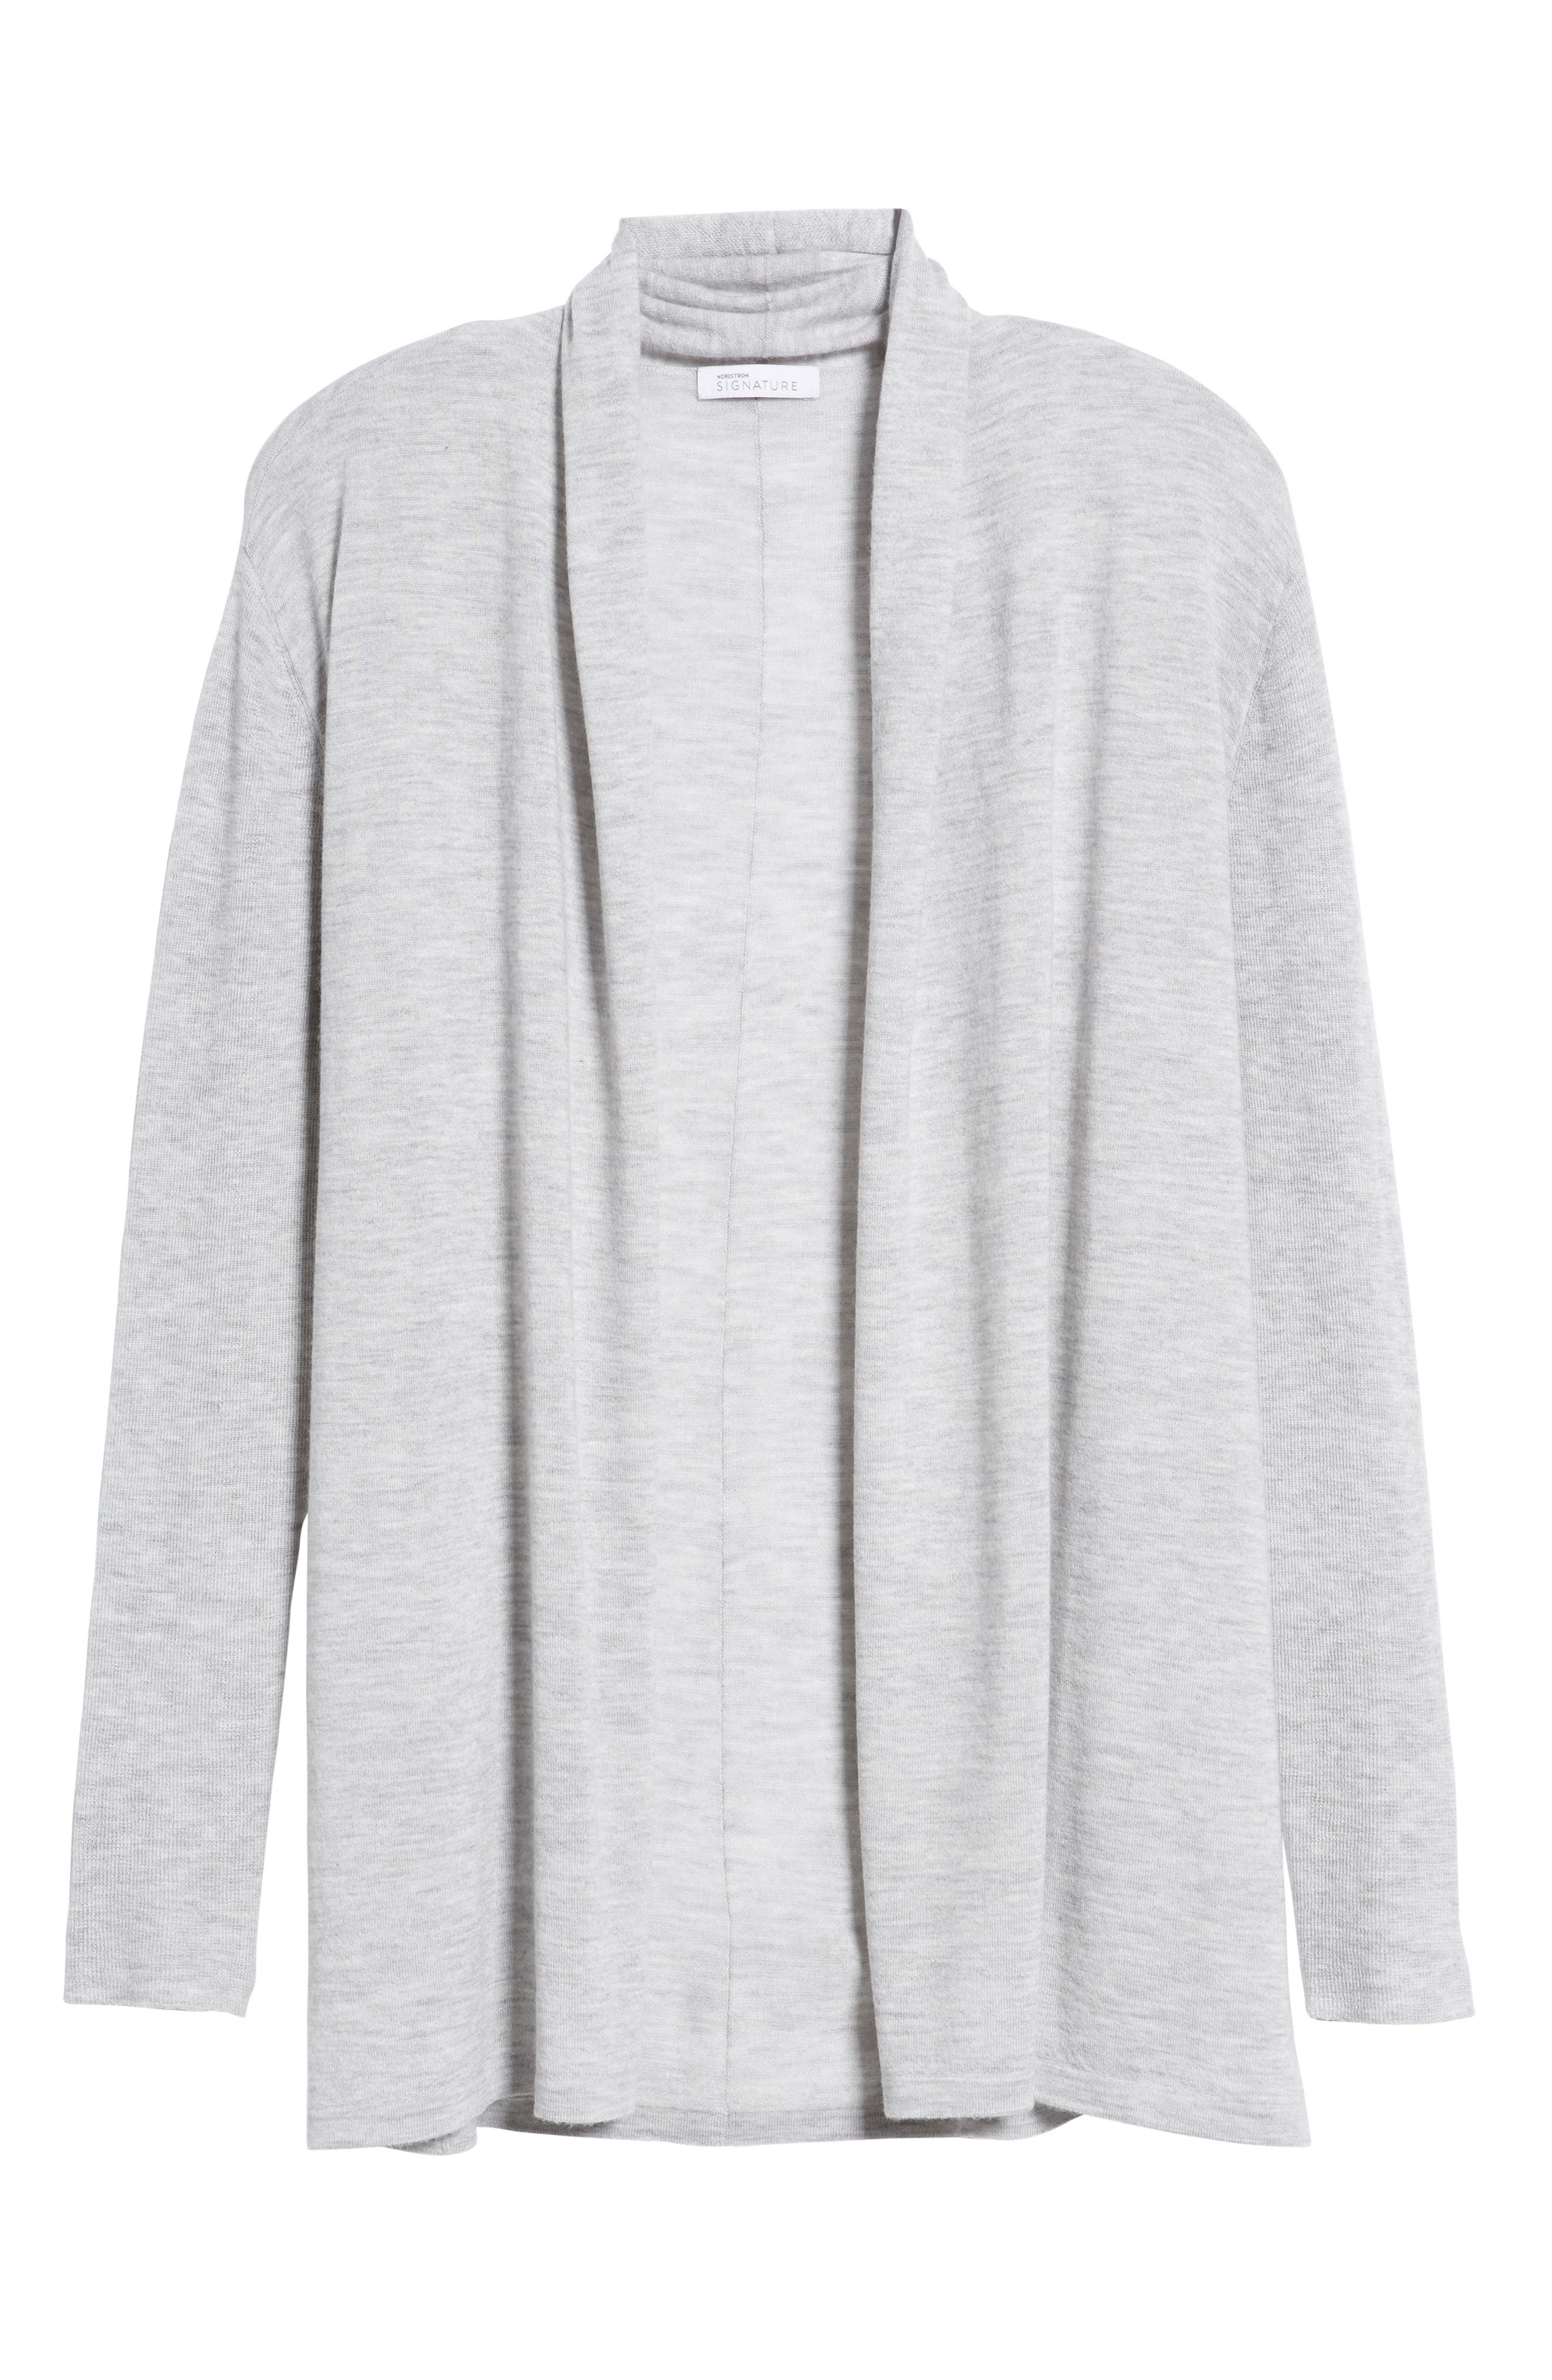 Cashmere Cardigan,                             Alternate thumbnail 6, color,                             Grey Clay Heather